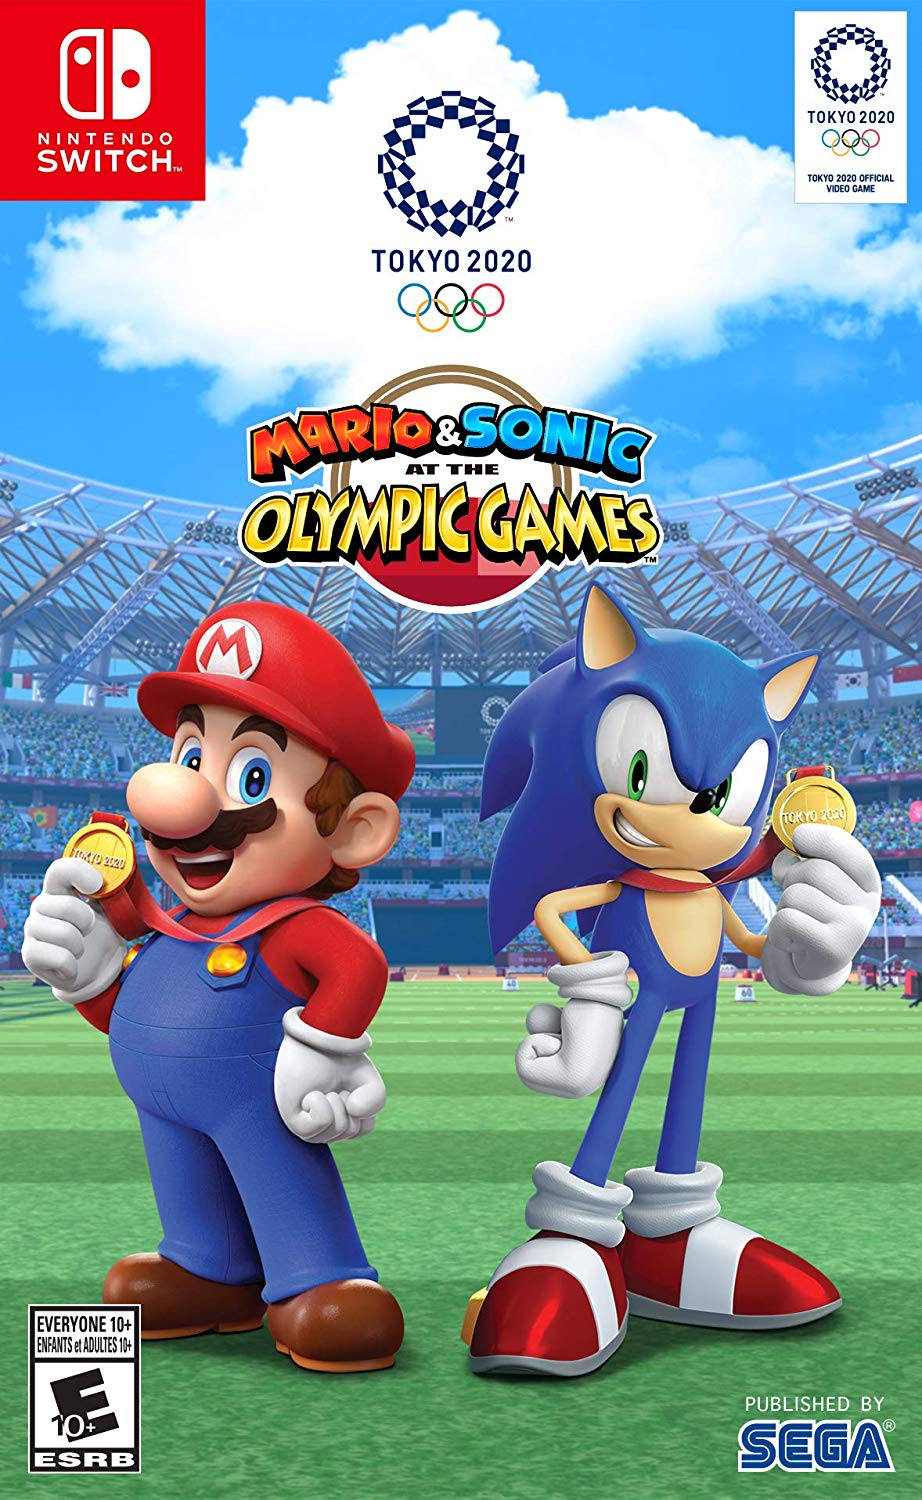 Mario Sonic At The Olympic Games Tokyo 2020 Sega Nintendo Switch 010086770094 Walmart Com In 2021 Nintendo Switch Games Olympic Games Mario